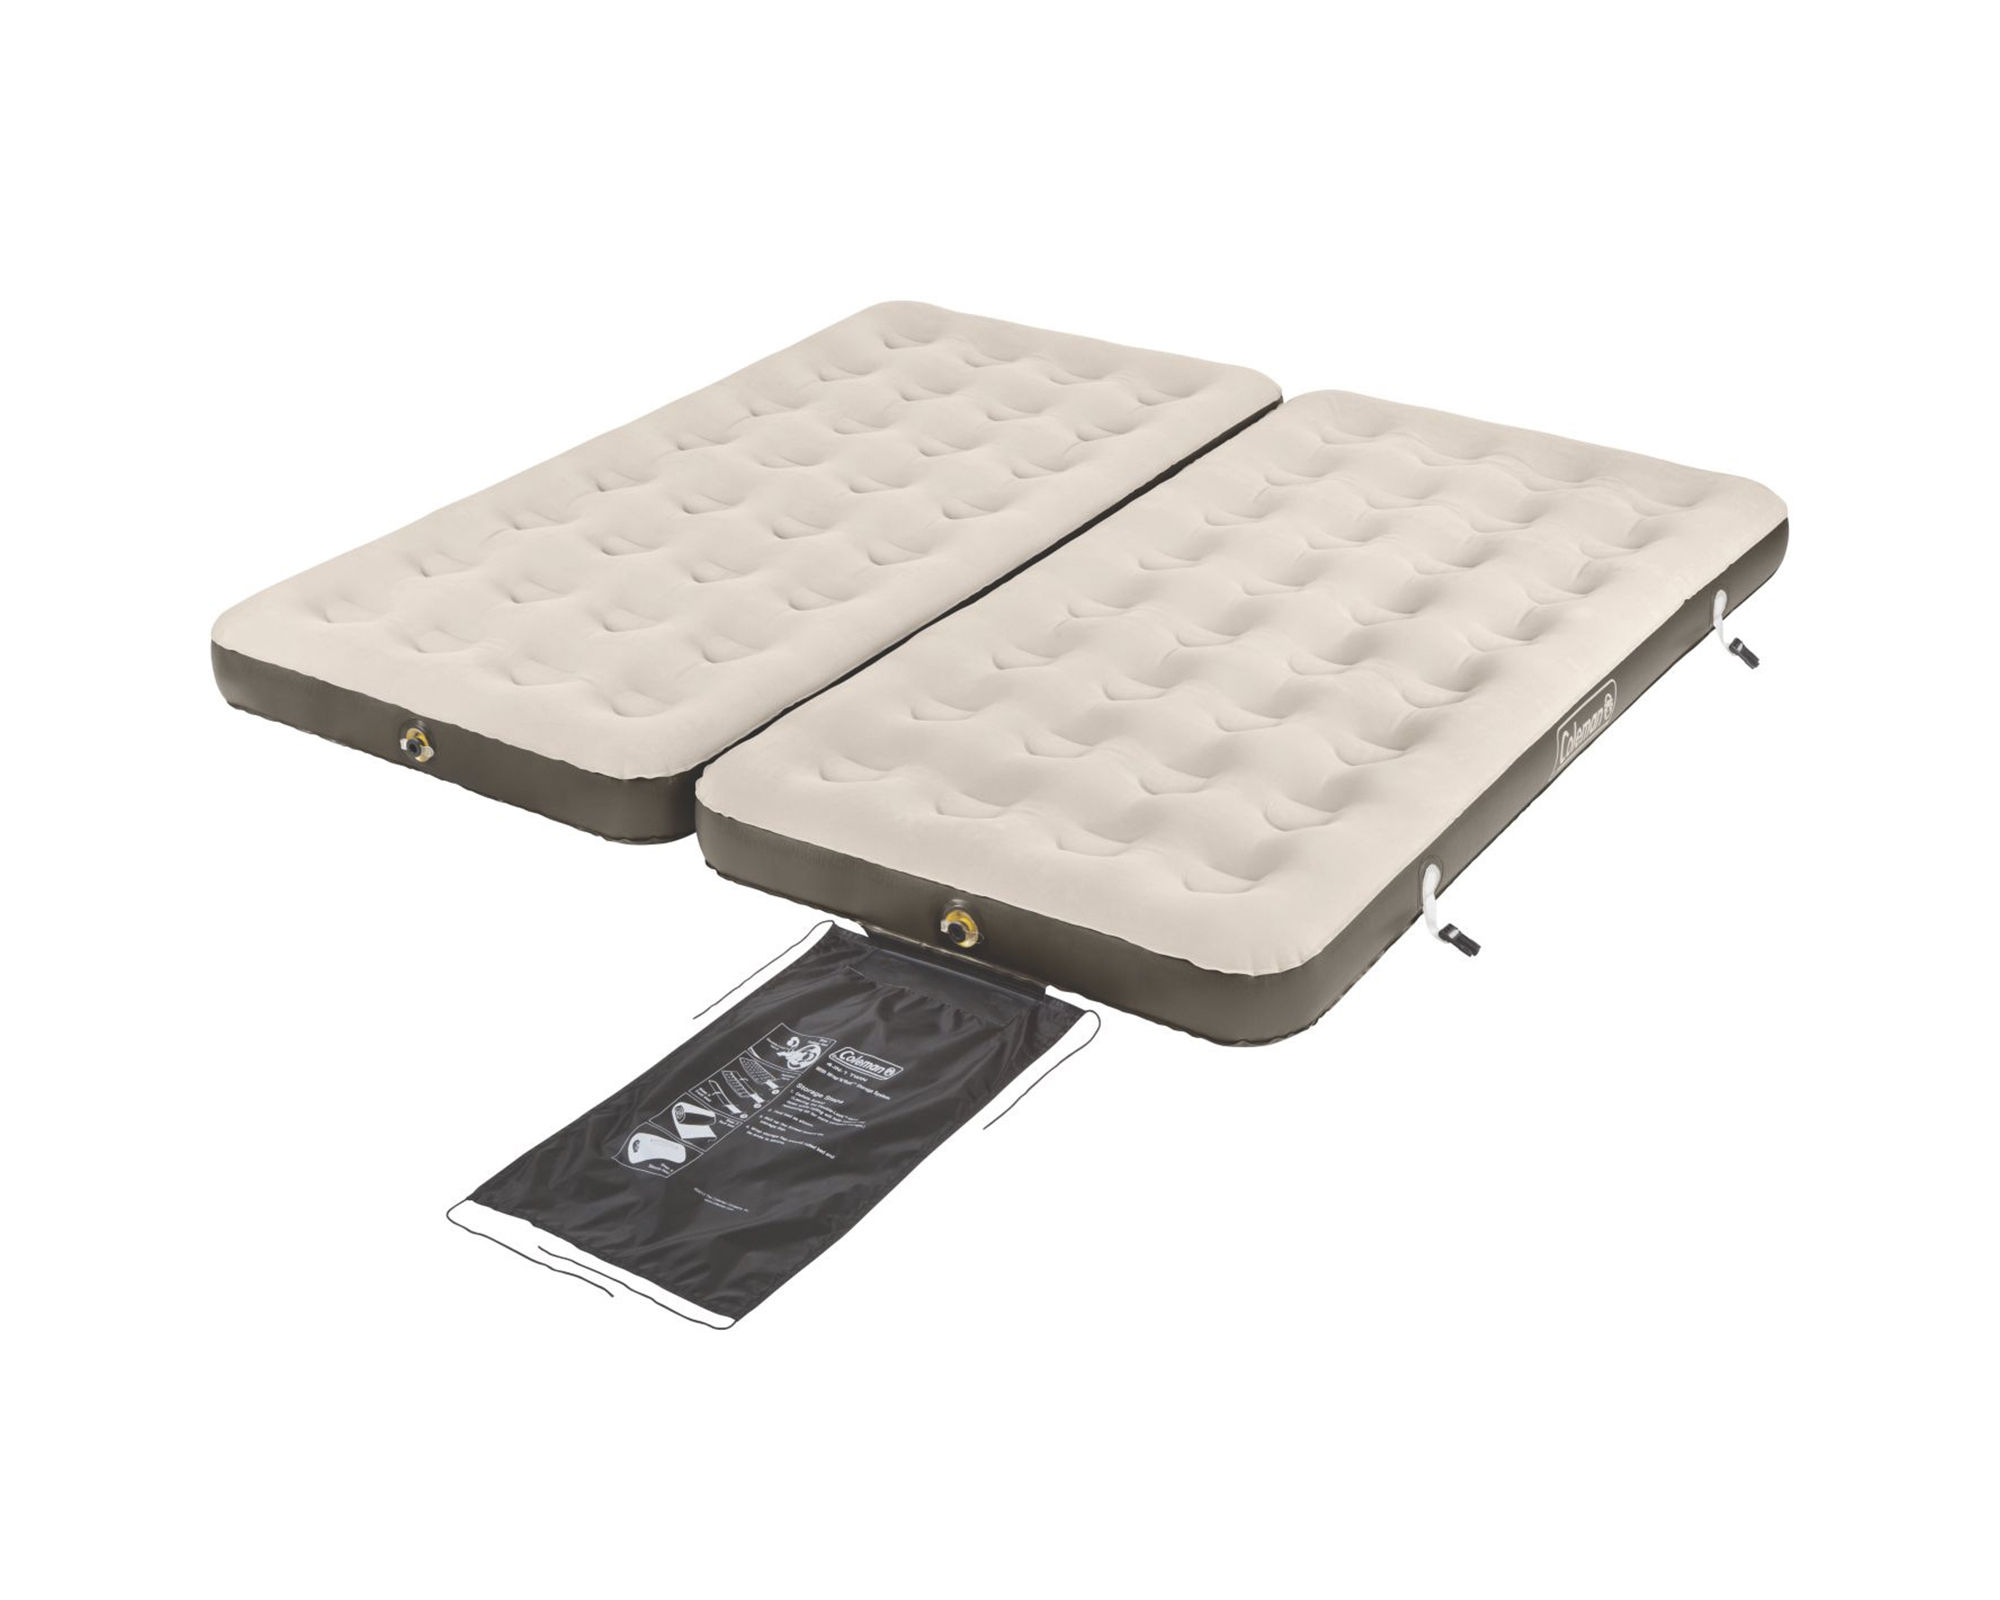 Iseries Mattress Review Sleepys Direct 7 Inch Gel Mattress Full KT10074/6SET